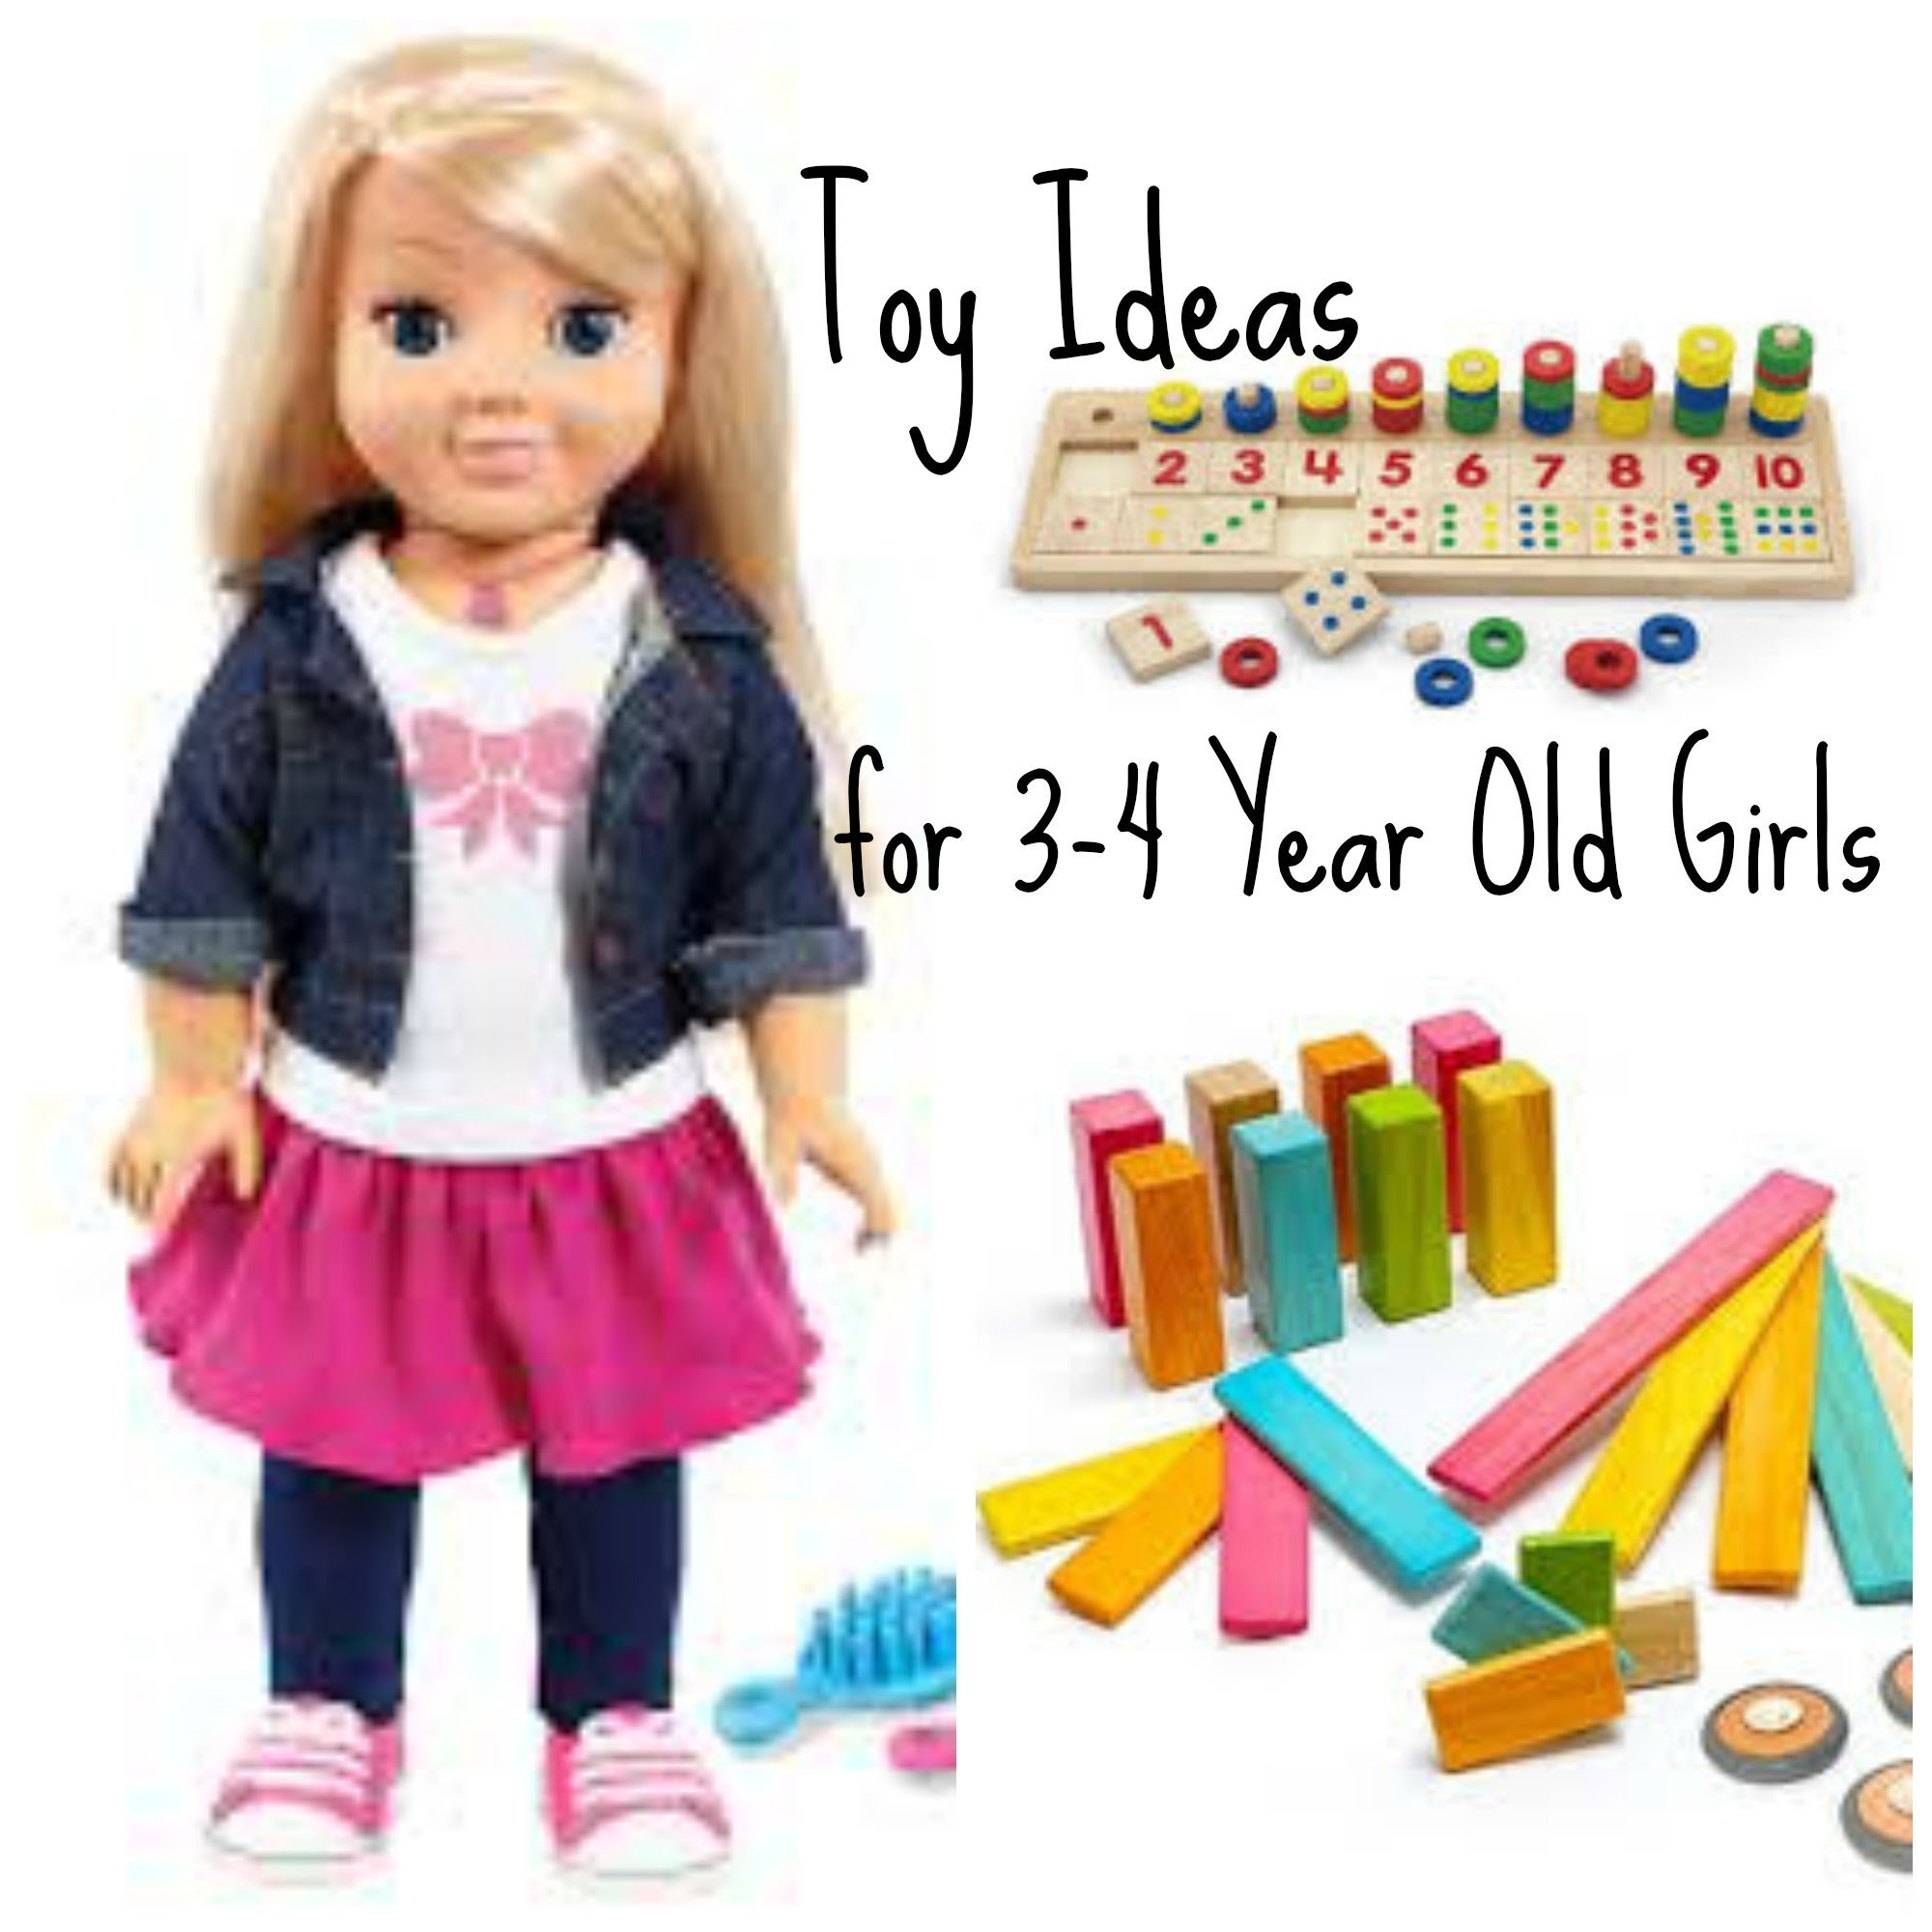 toys 3-4 years old girl | all i want for christmas collab - youtube